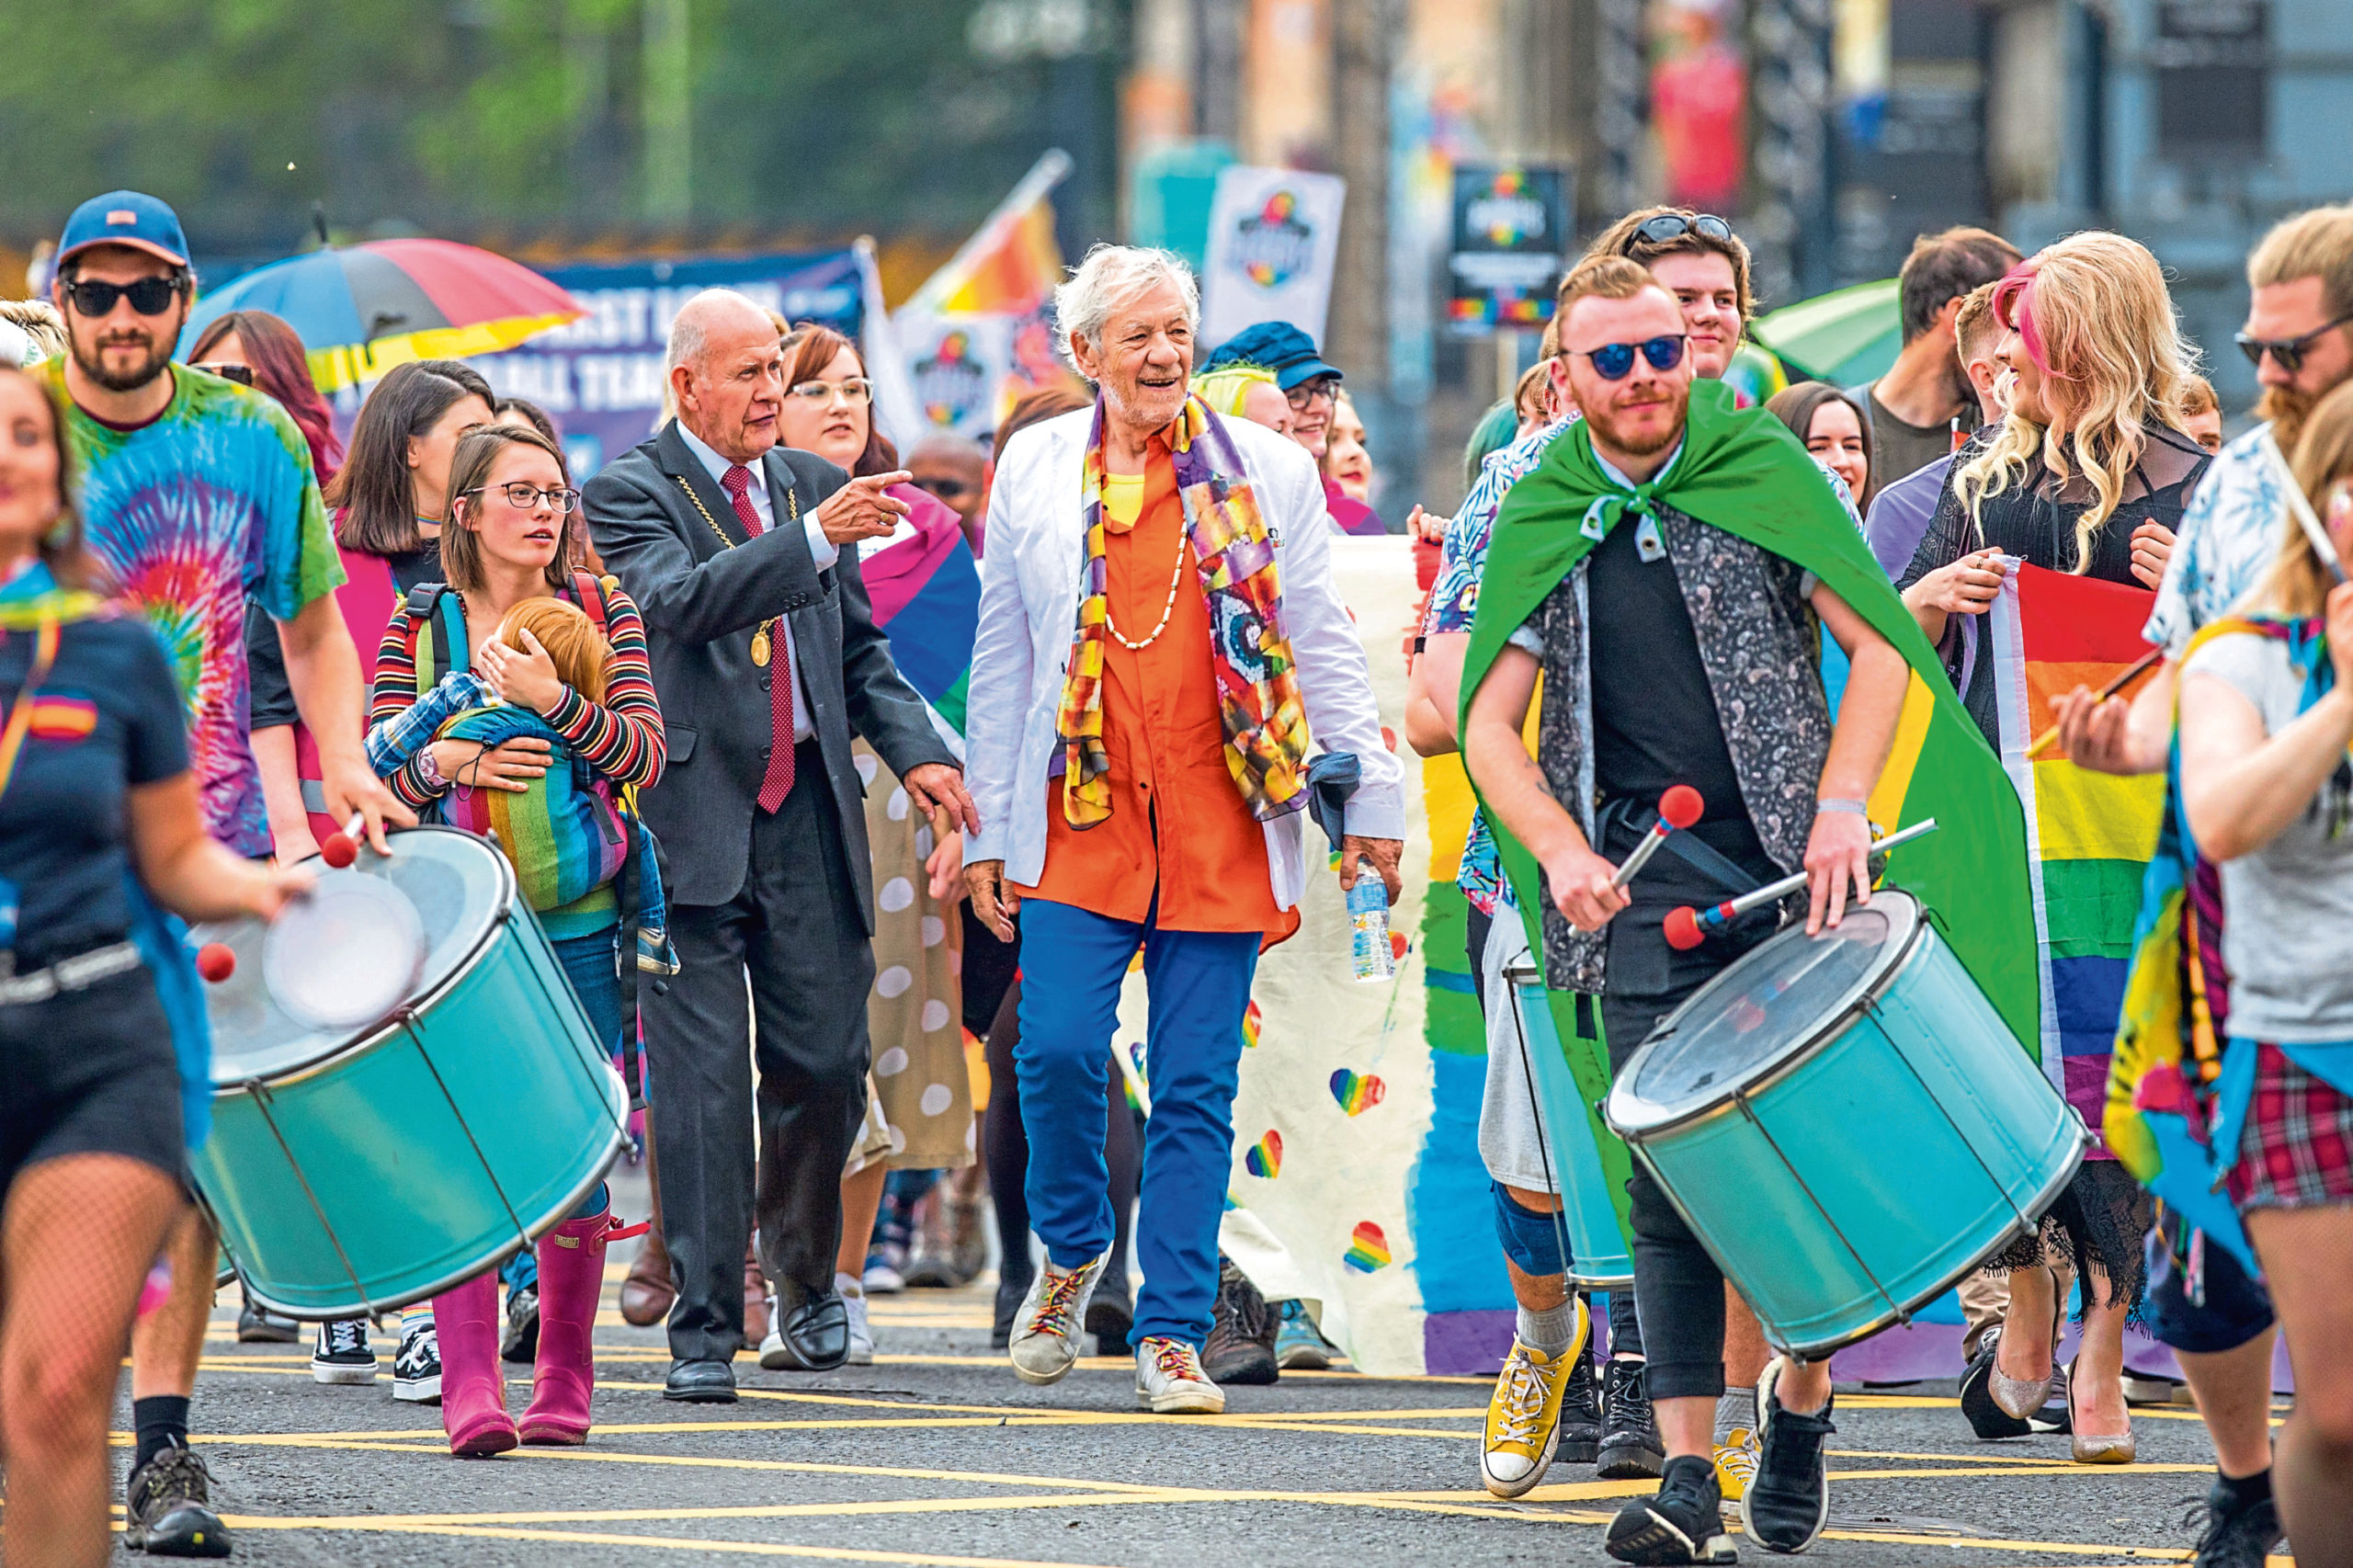 Perthshire Pride 2019 event with parade and appearance by Sir Ian McKellen.